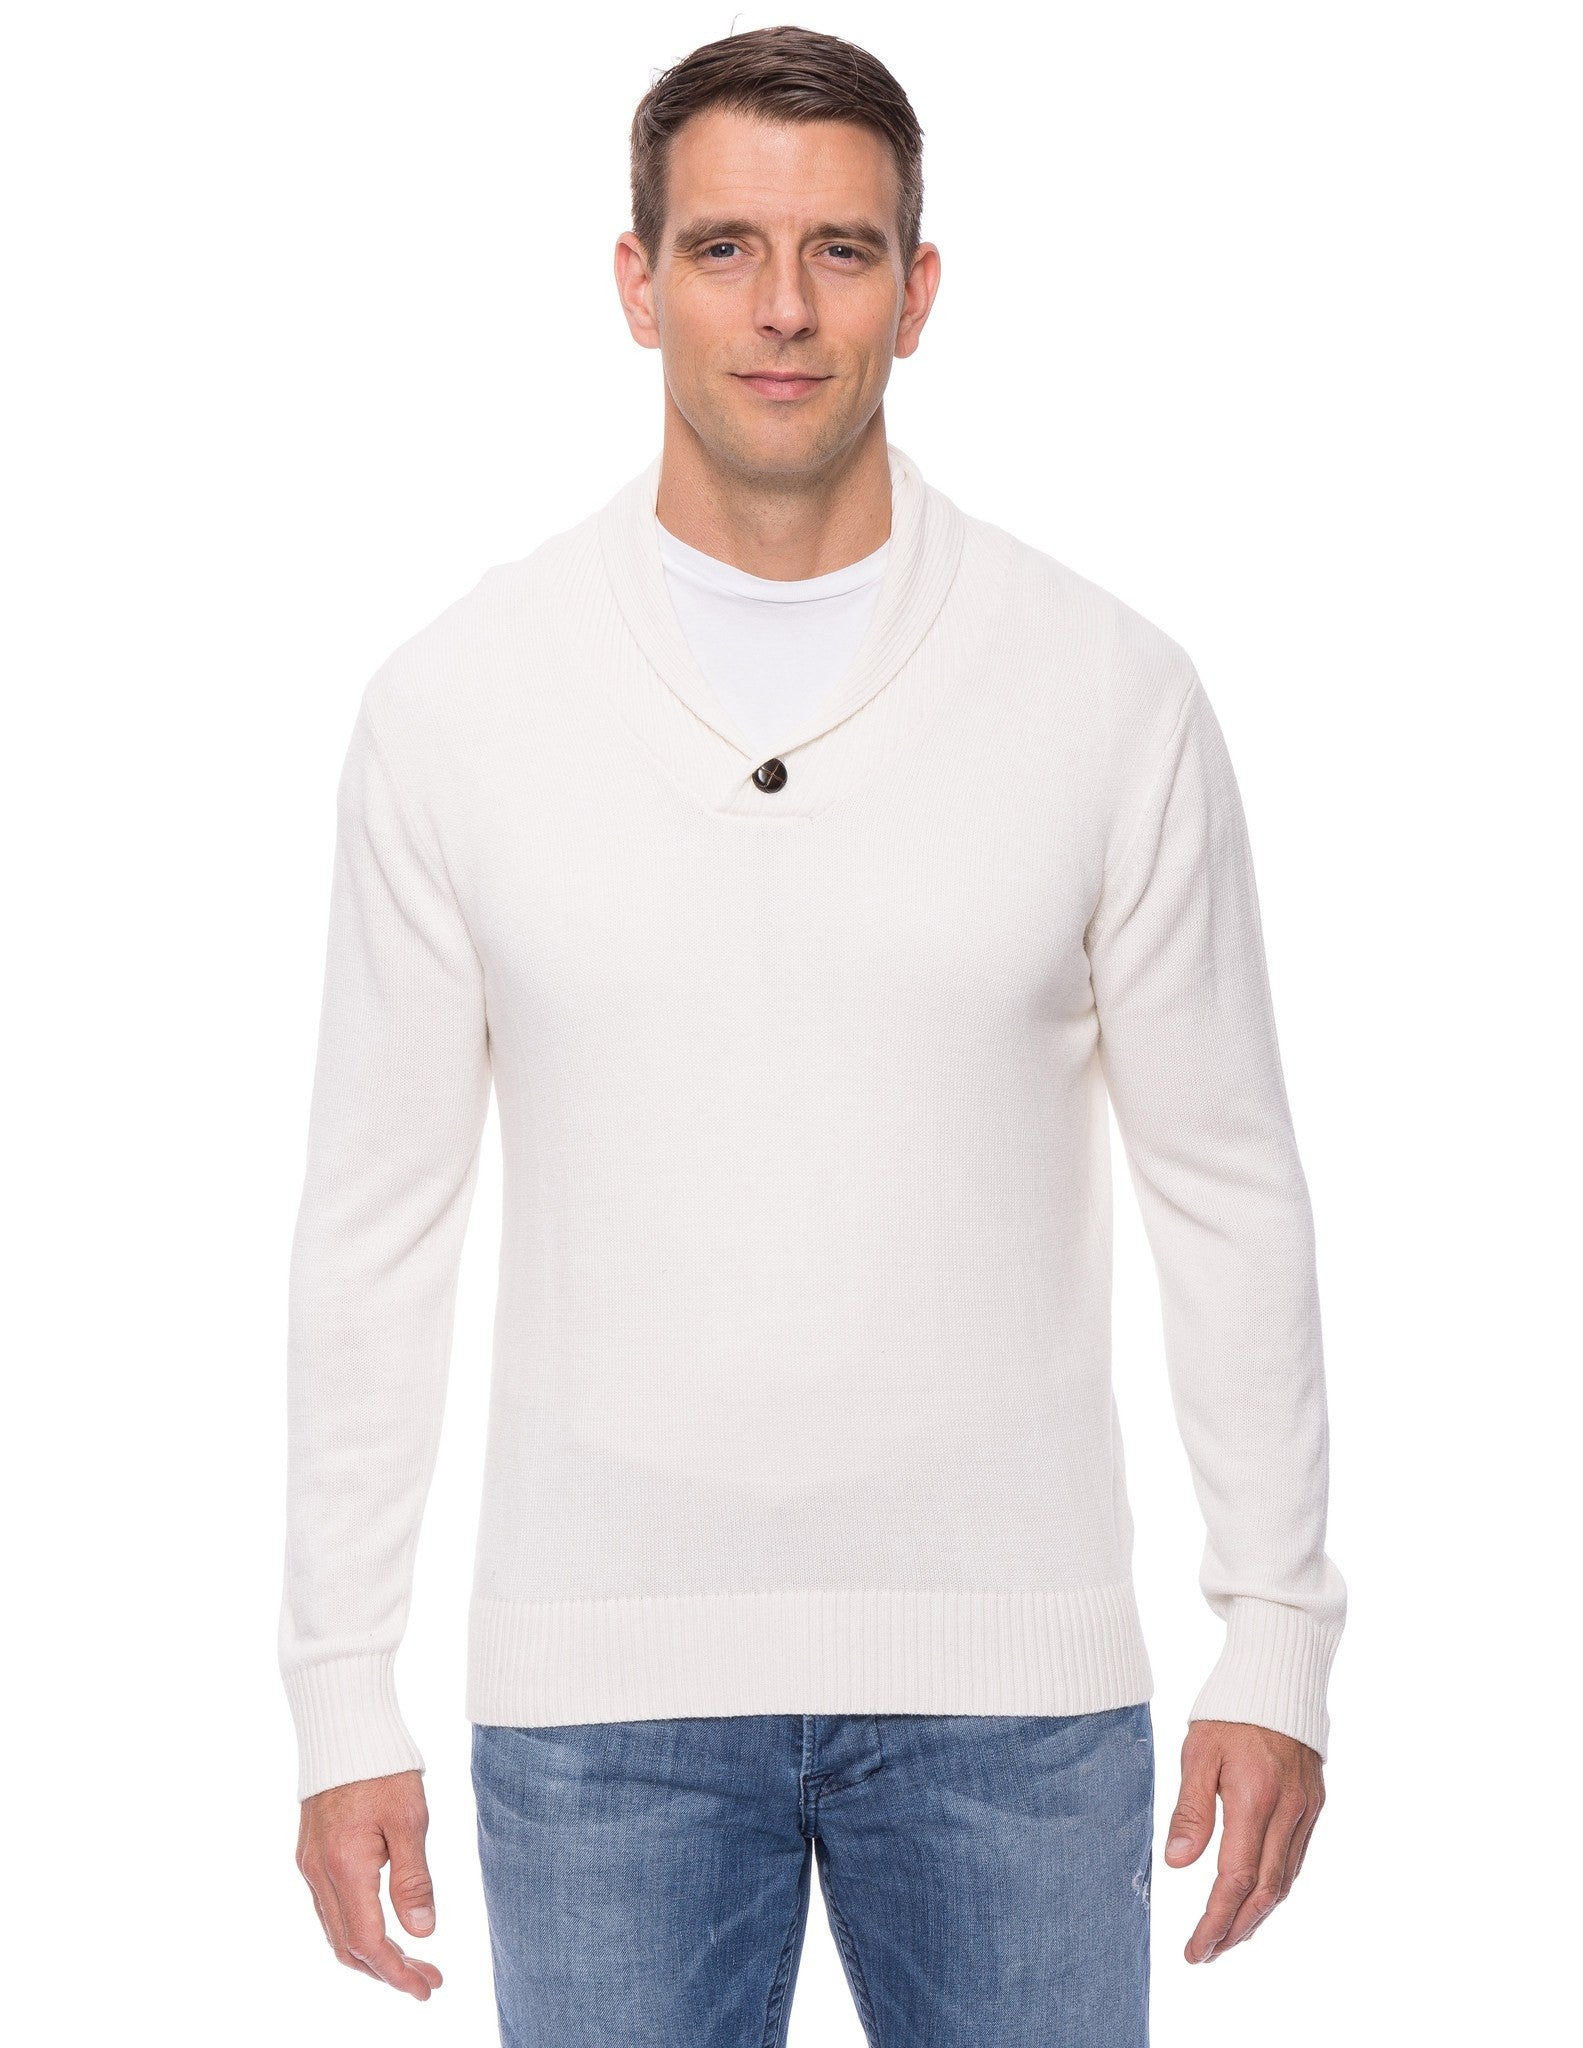 Box-Packaged Tocco Reale Men's Cashmere Blend Shawl Collar Pullover Sweater